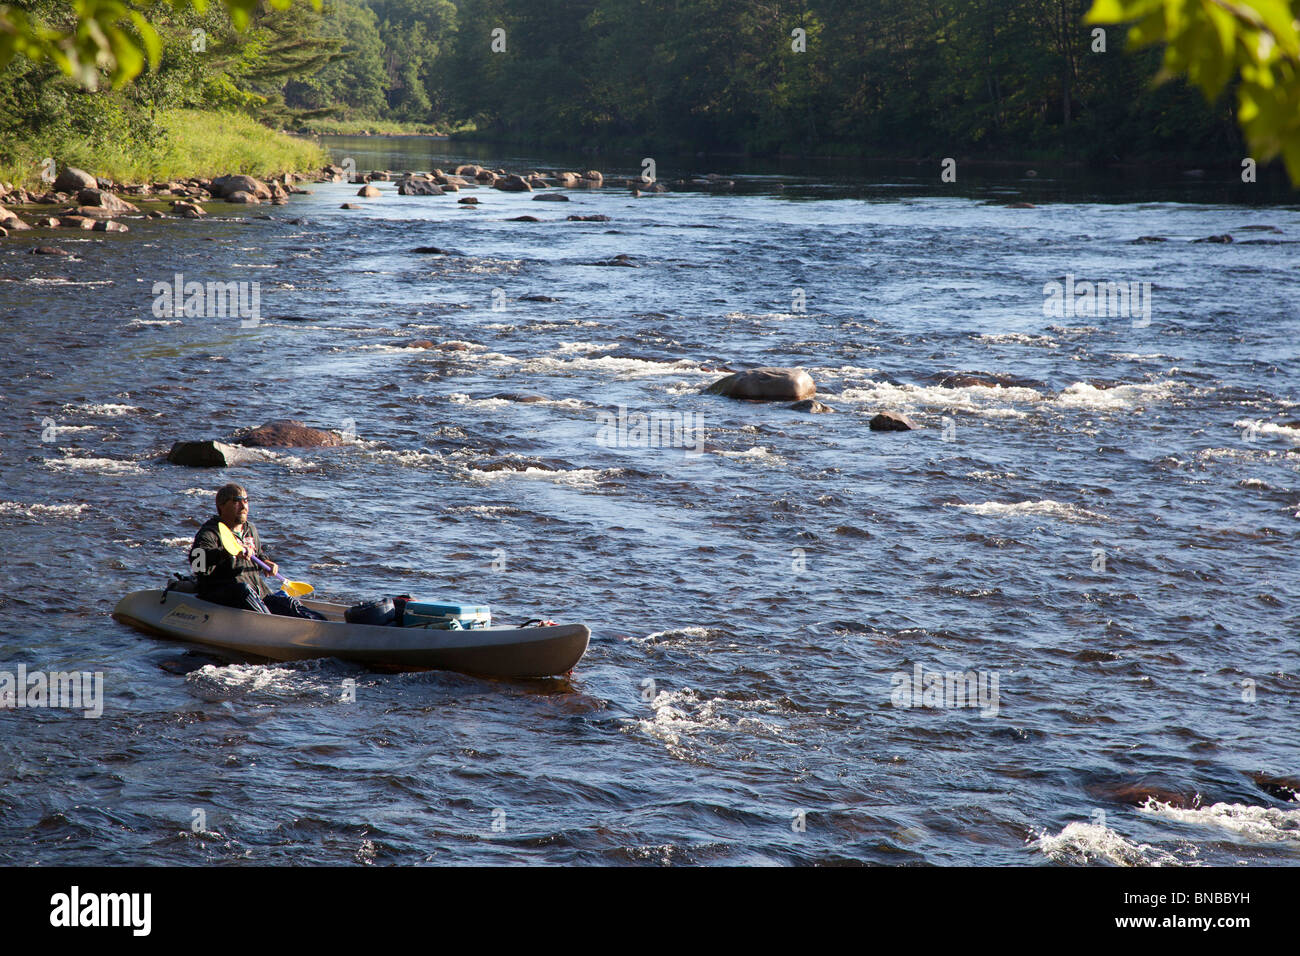 A Man Paddles Canoe Kayak Hybrid Through Rapids In The Early Morning On Pemigewasset River